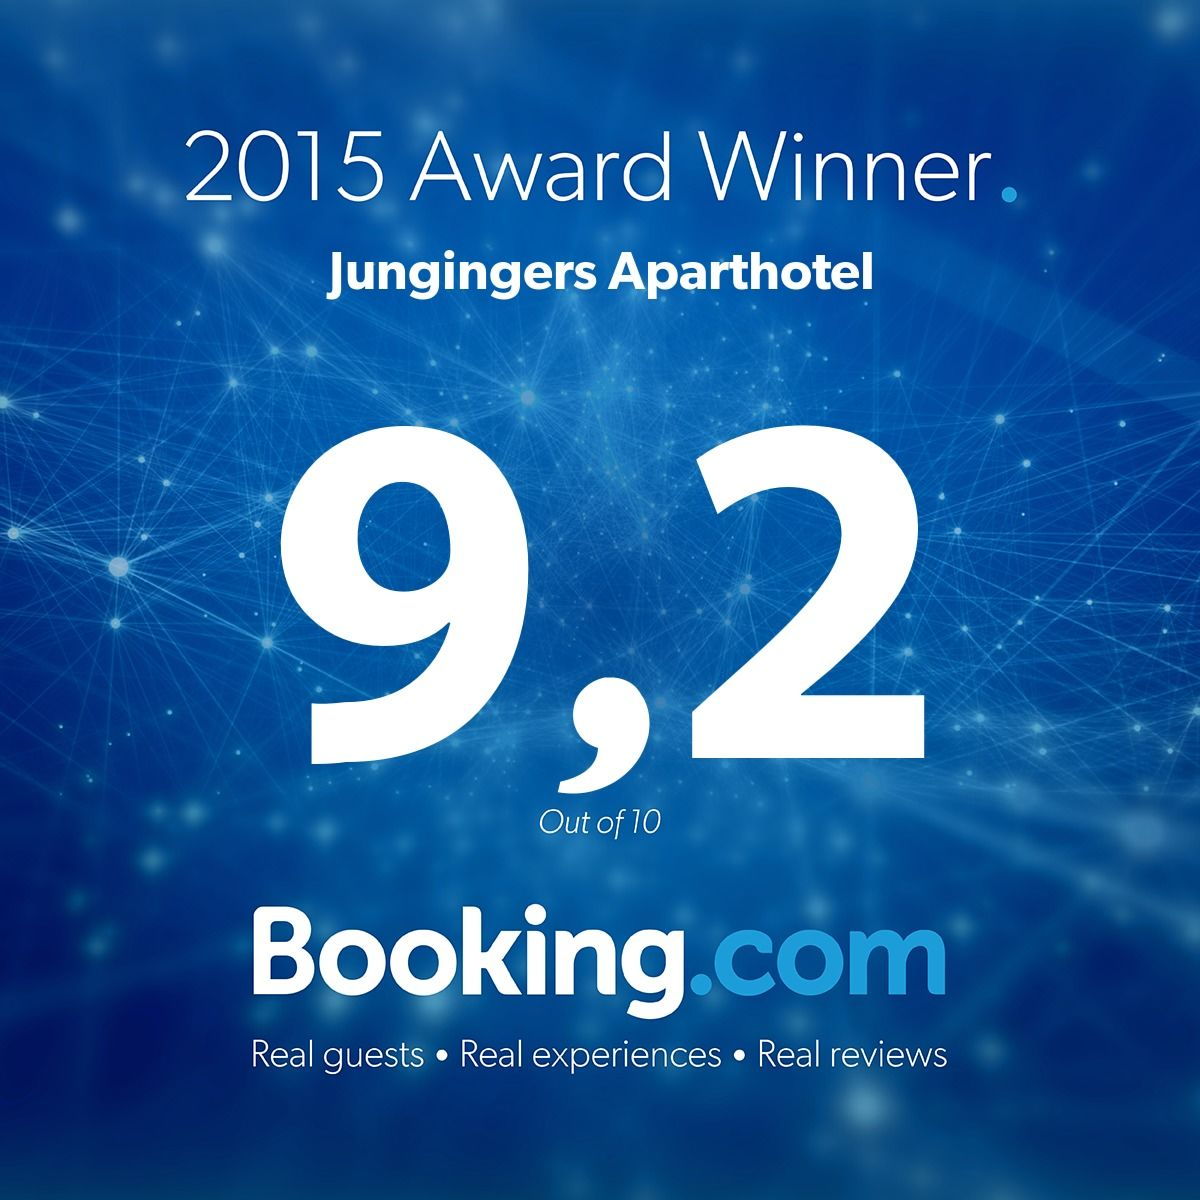 bookig.com award 2015